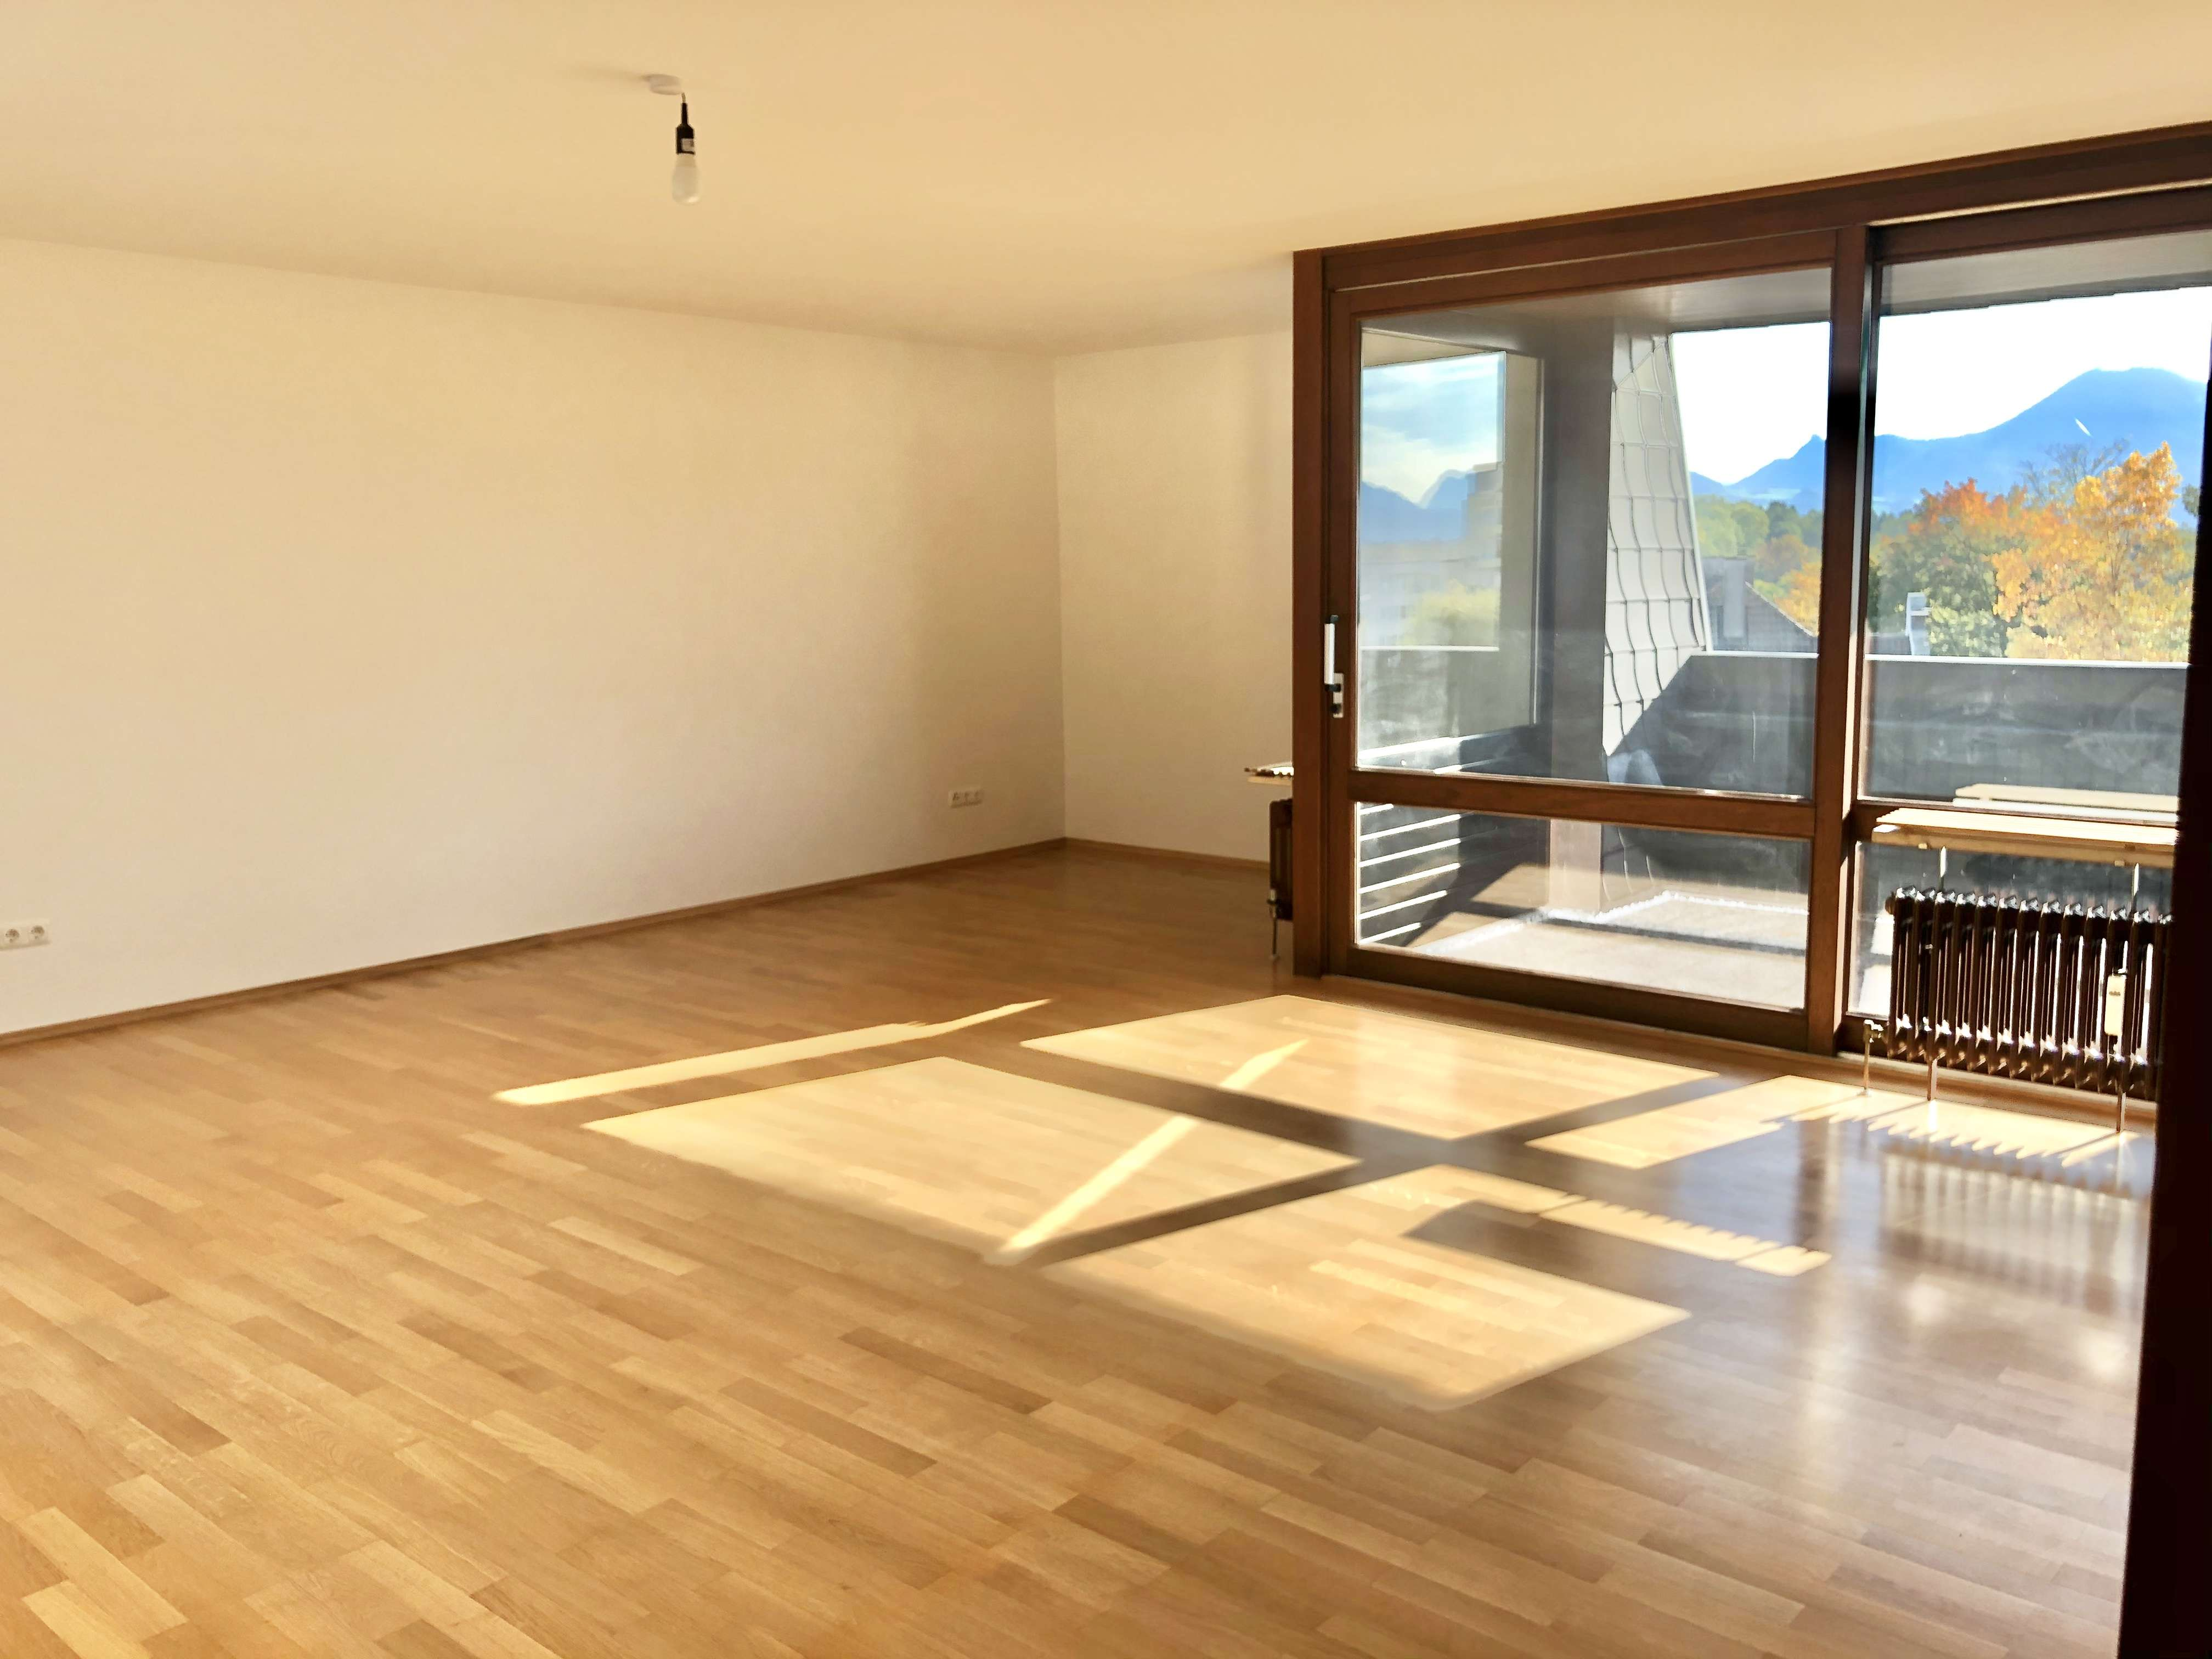 3-Zimmer-Penthouse-Wohnung in Freilassing in Freilassing